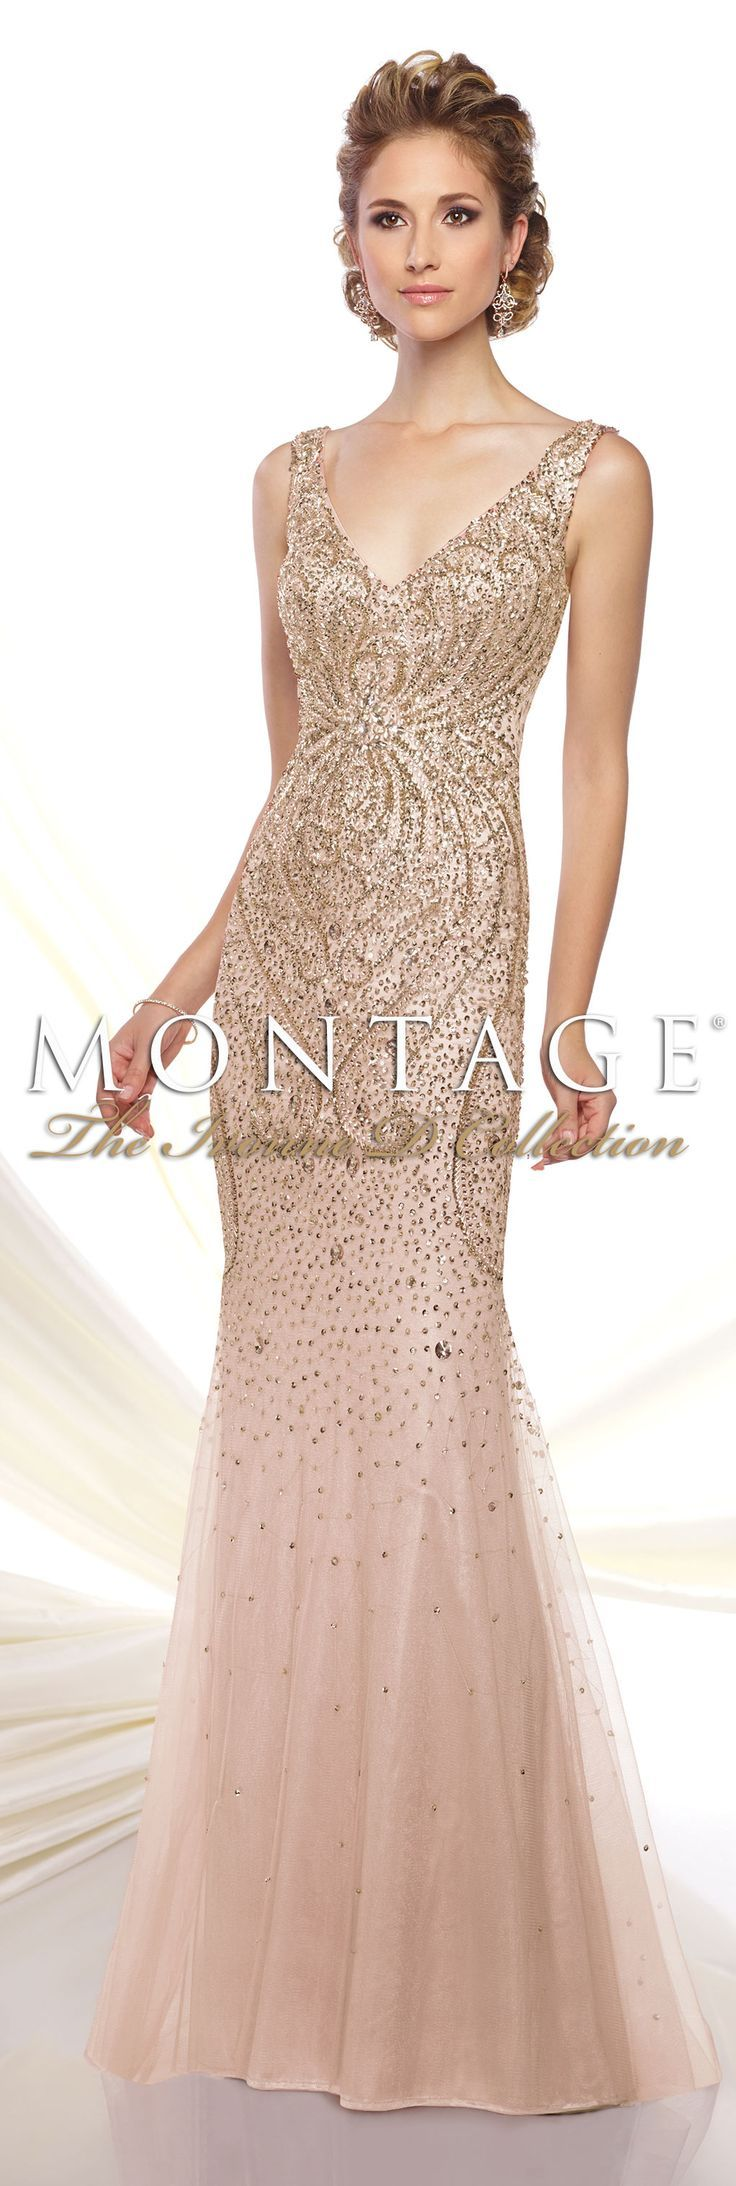 Couture Ivonne D Mother of the Bride Dresses 2018 for Mon ...